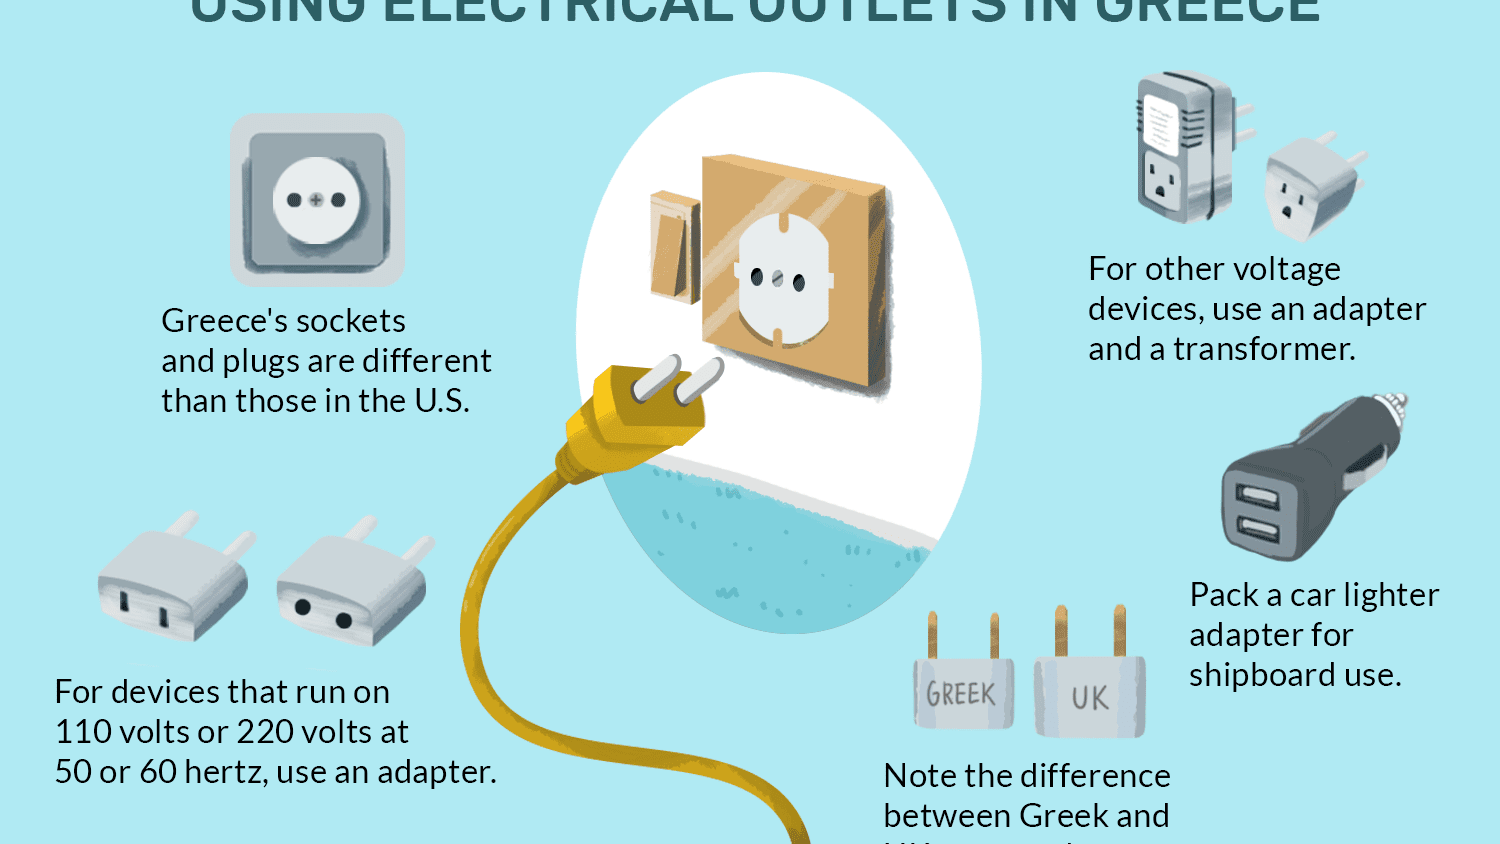 Learn About Electrical Outlets in GreeceTripSavvy